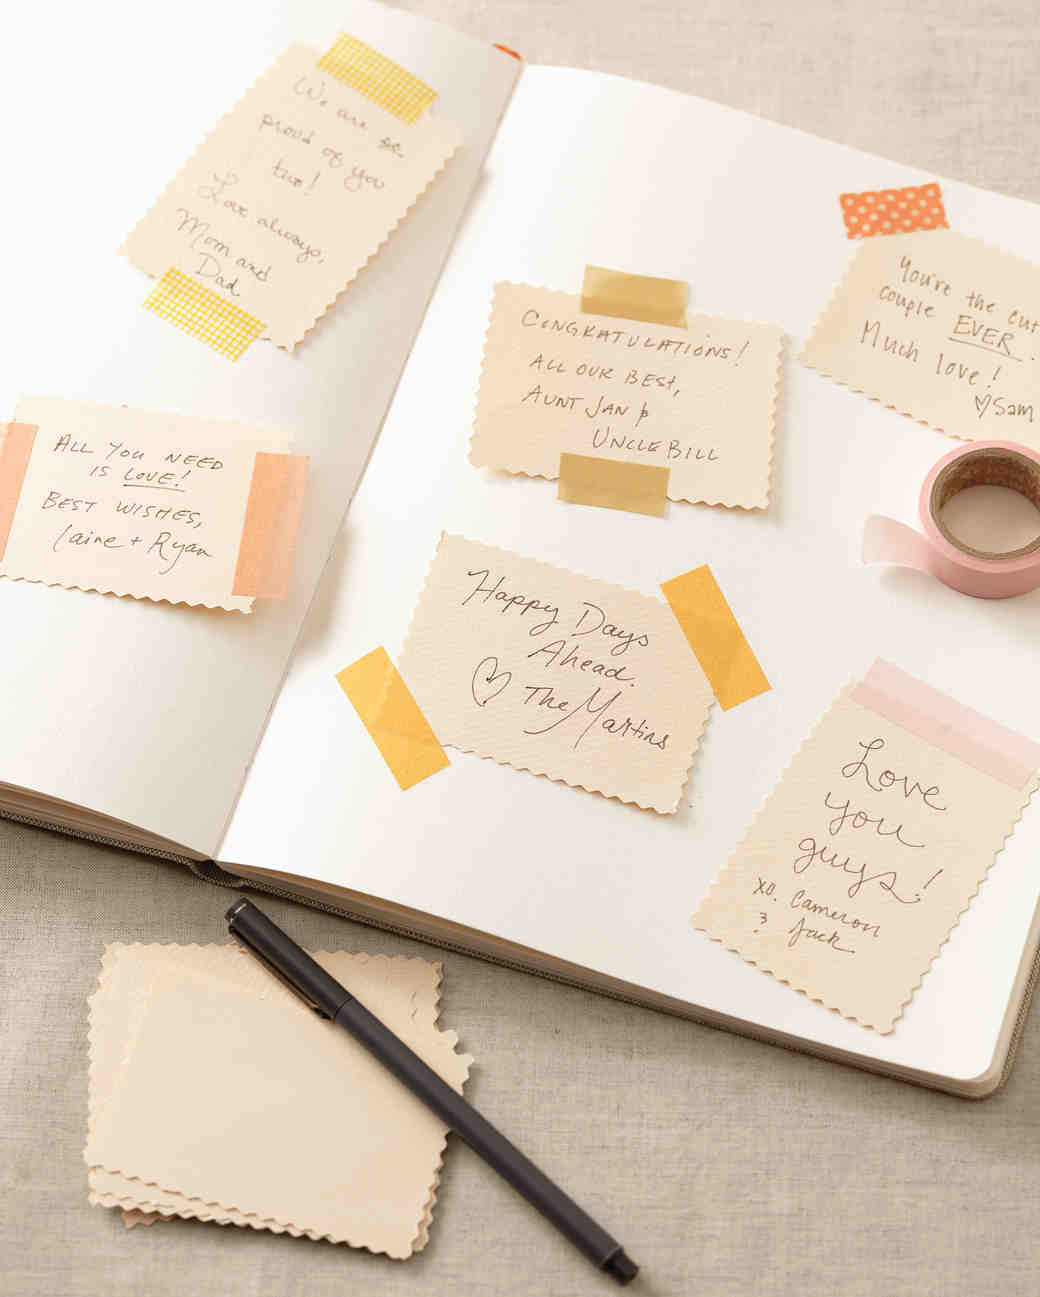 17 Super Creative DIY Guest Book Ideas For Your Wedding